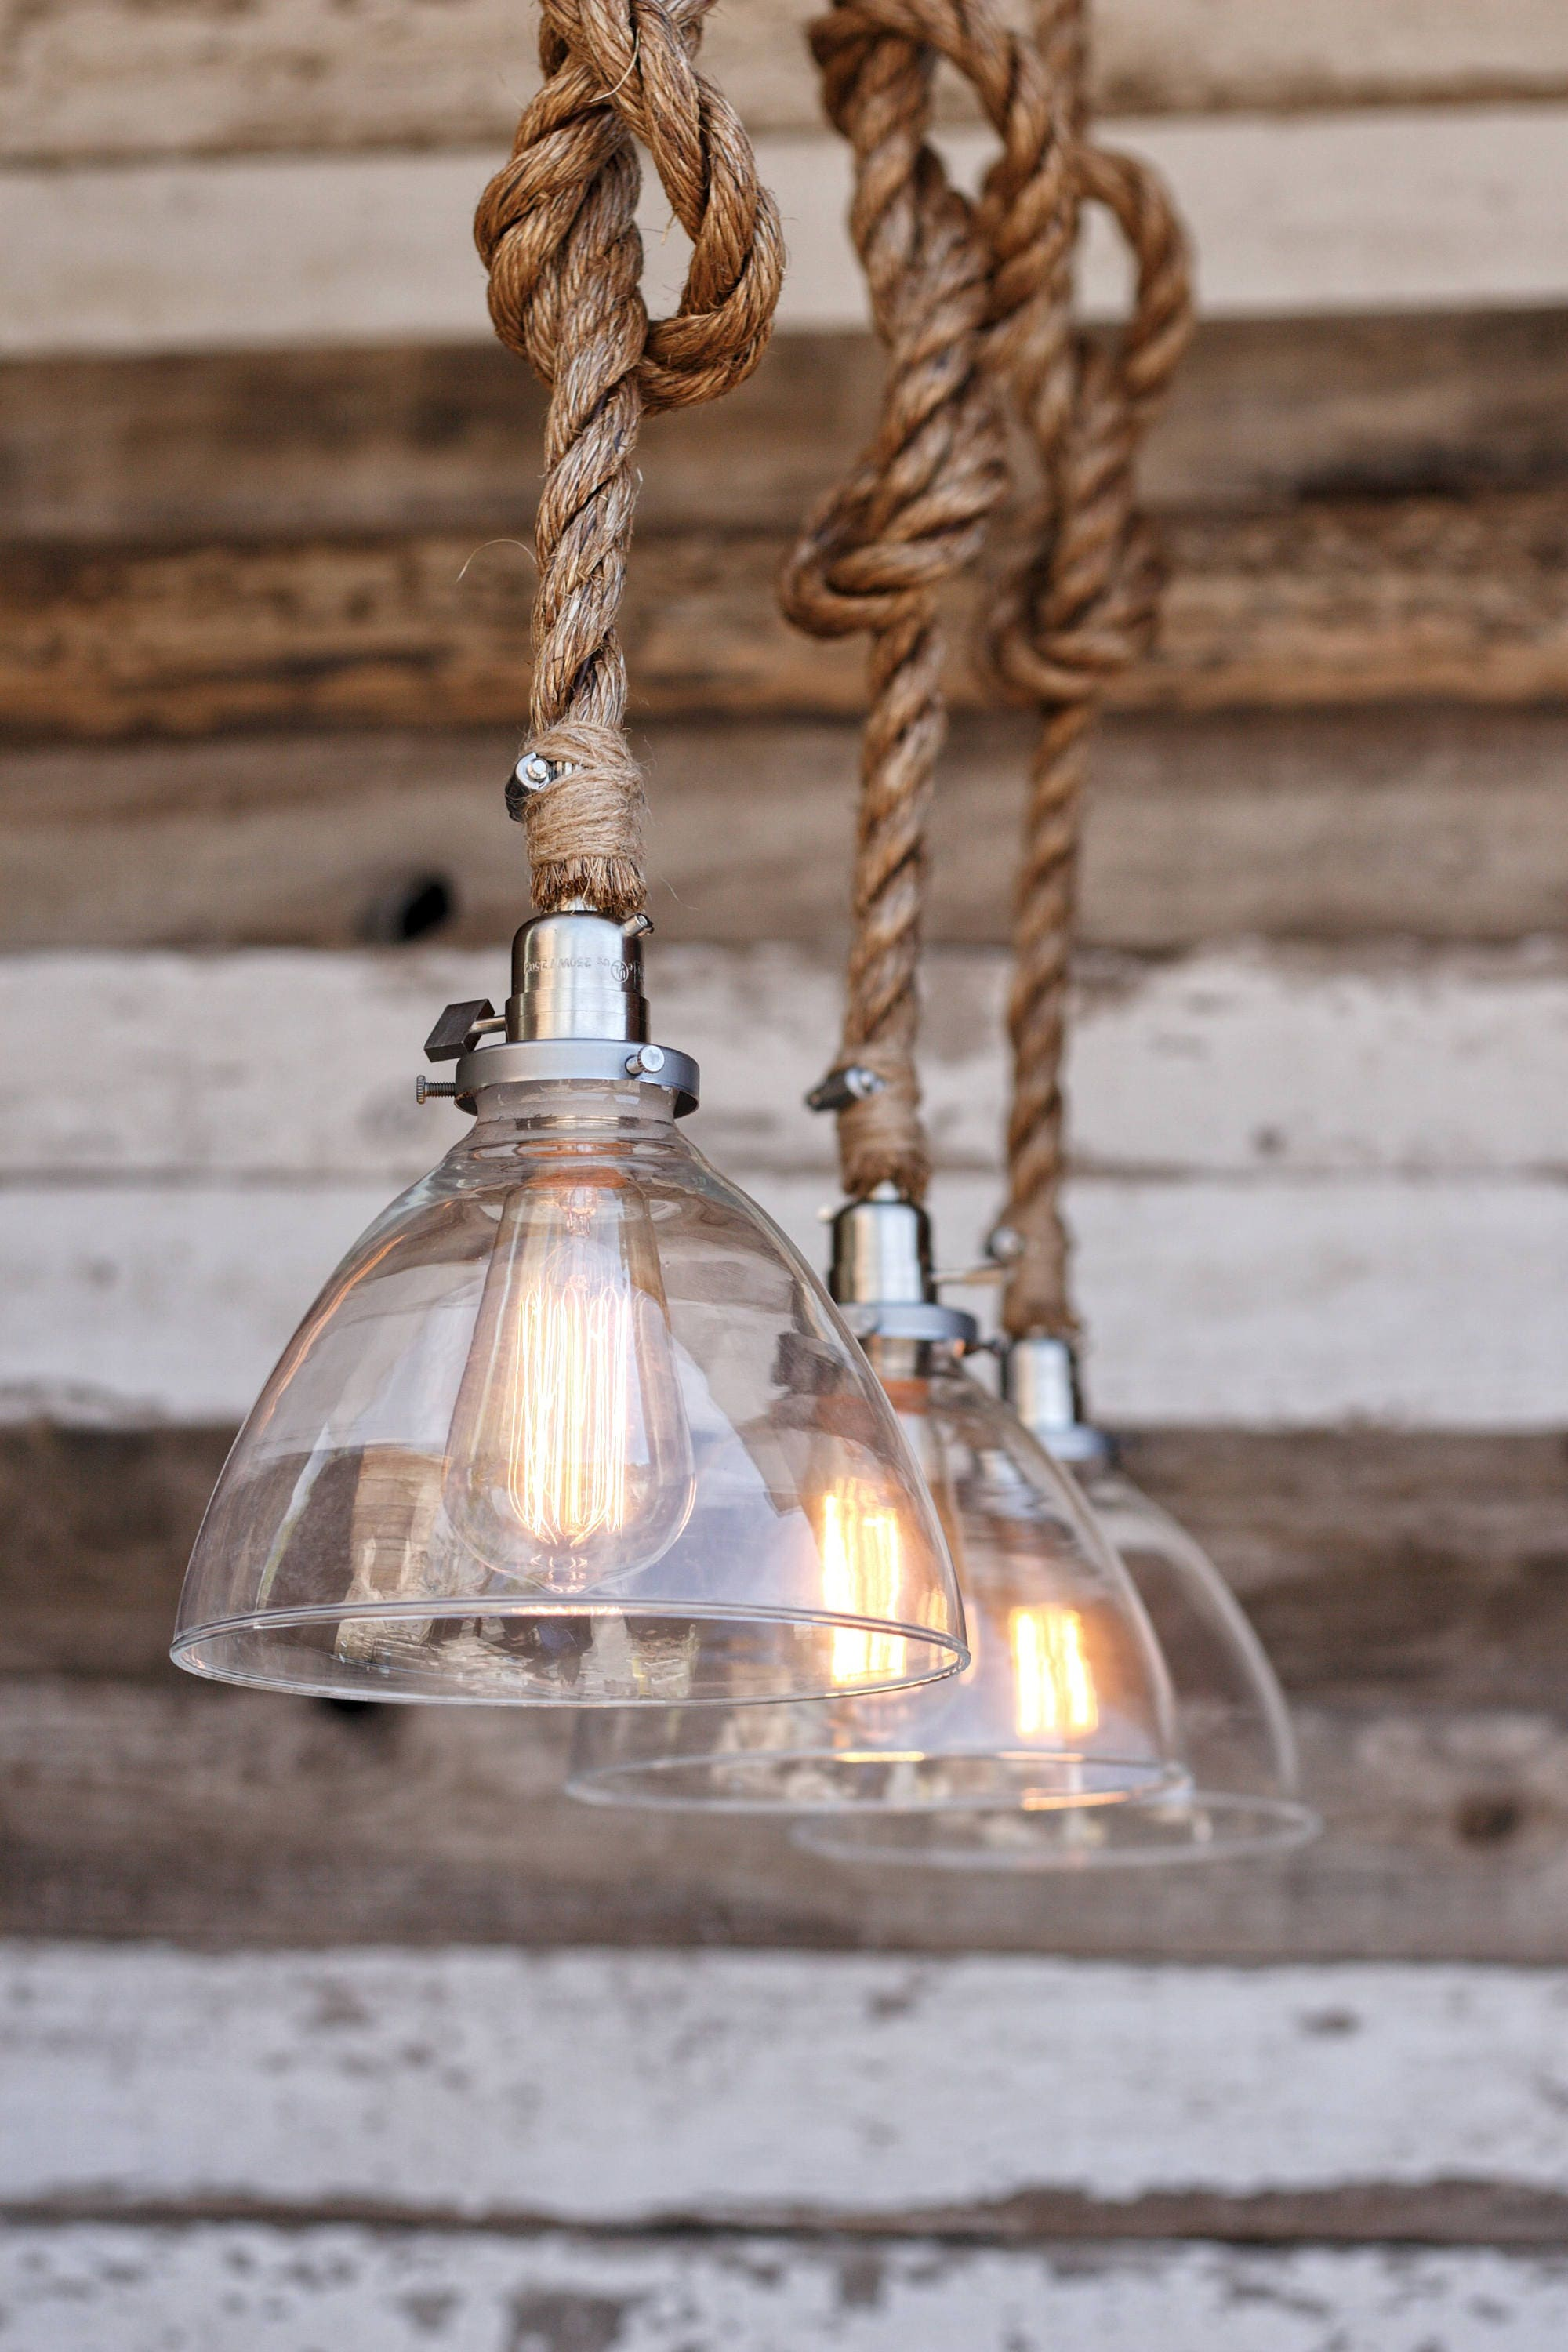 The snow pendant light industrial rope light fixture etsy zoom aloadofball Choice Image